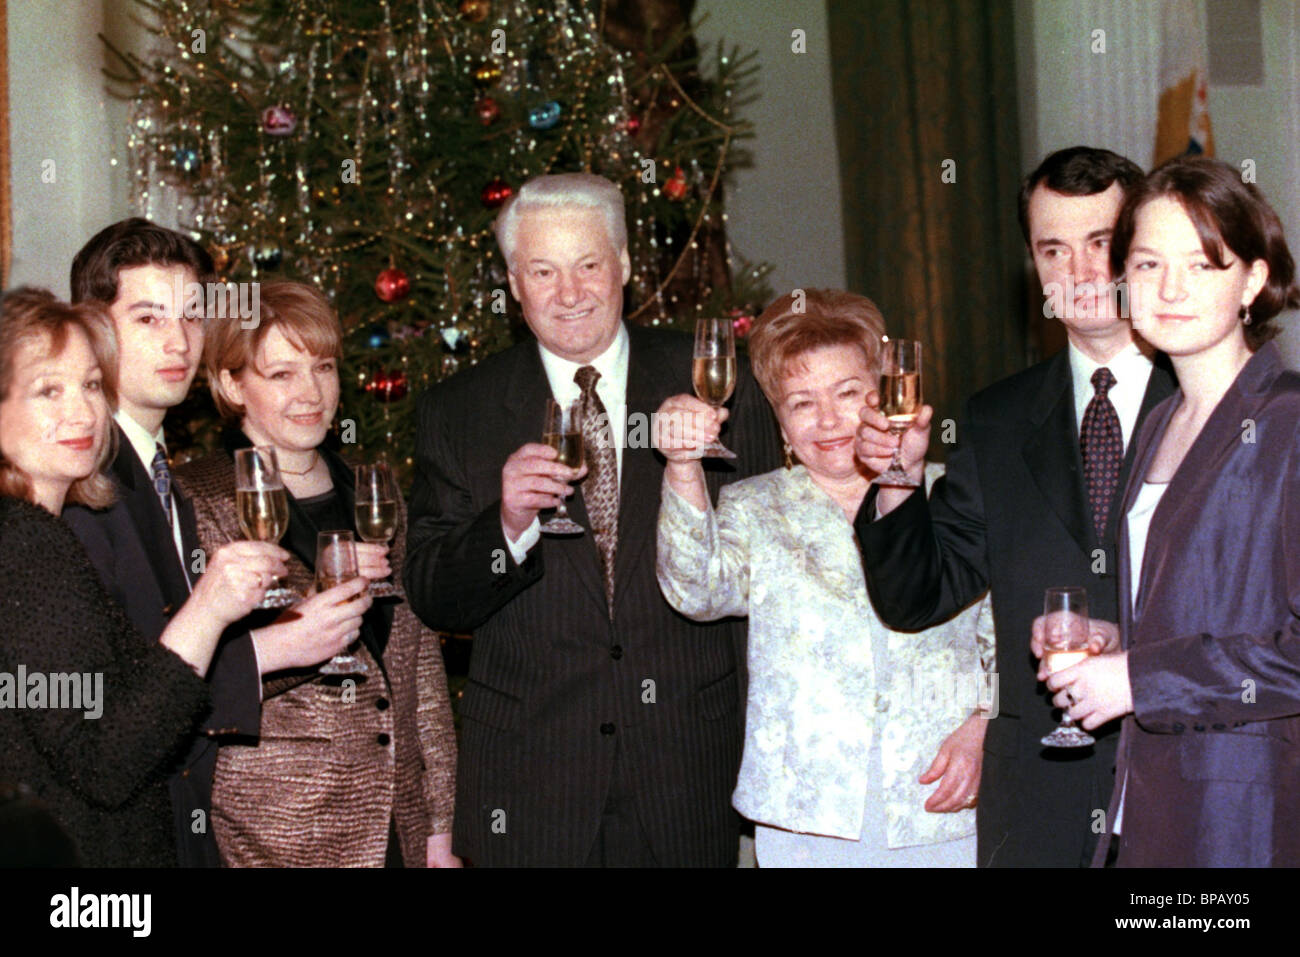 russian president boris yeltsin and his family new year greetings